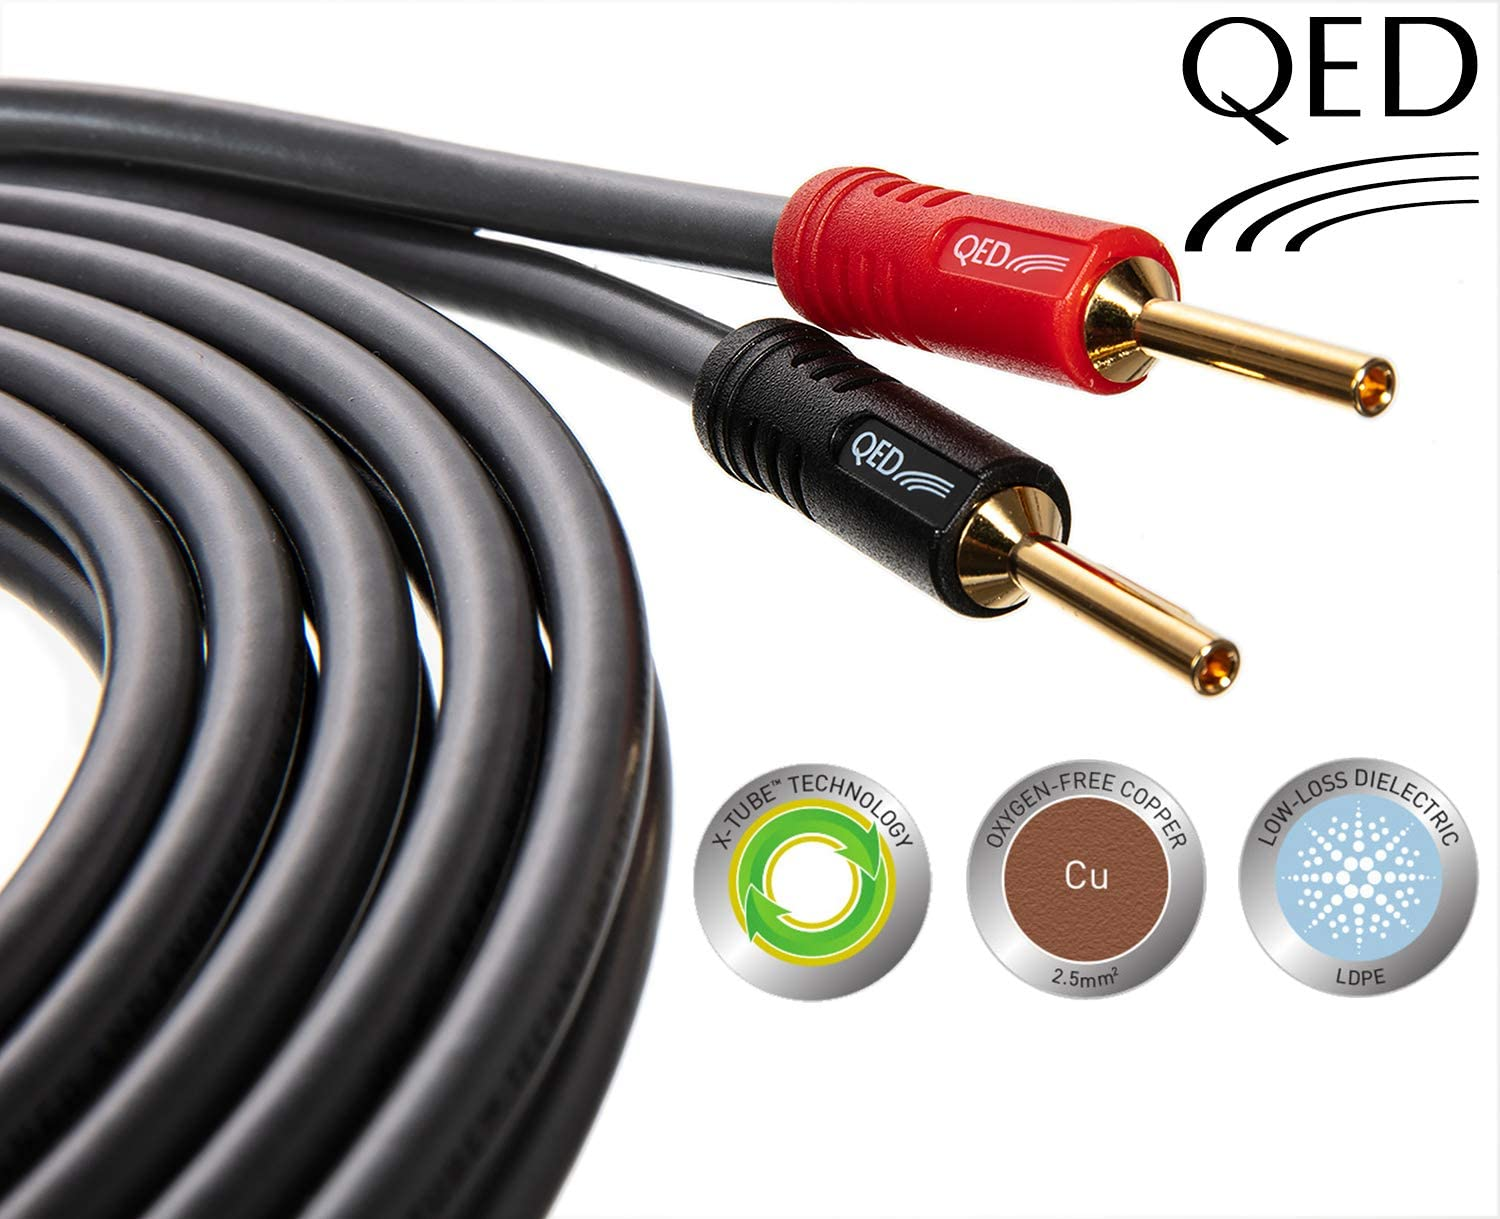 Two Cables Terminated Gold Plated 4mm Banana Plugs On All Ends 8 Plugs In Total QED Reference XT40i Speaker Cable 3.5 Metre Pair